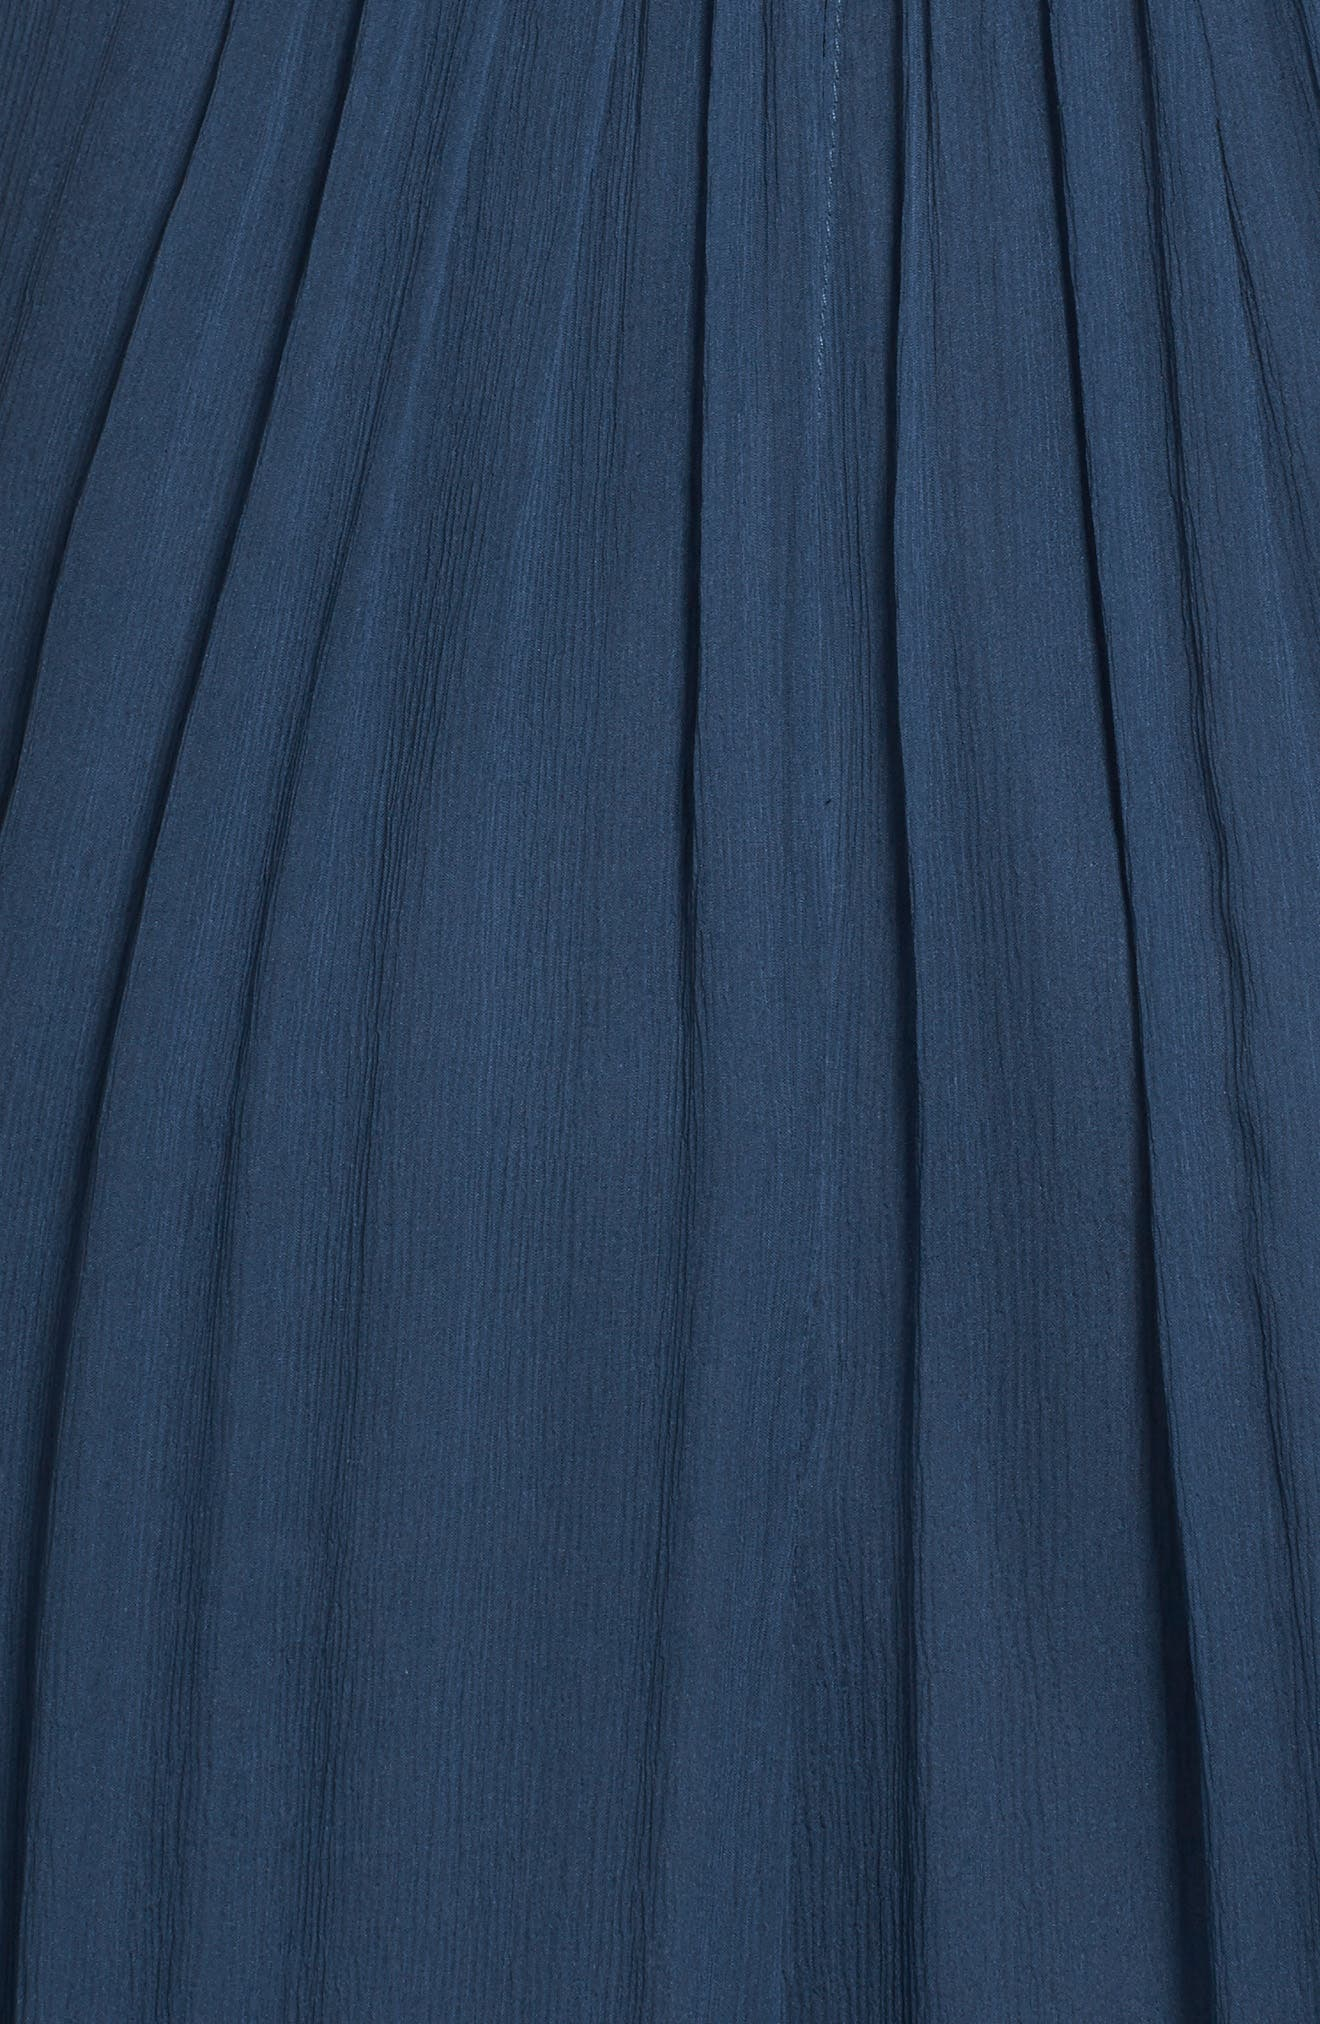 Convertible Crinkled Silk Chiffon Gown,                             Alternate thumbnail 21, color,